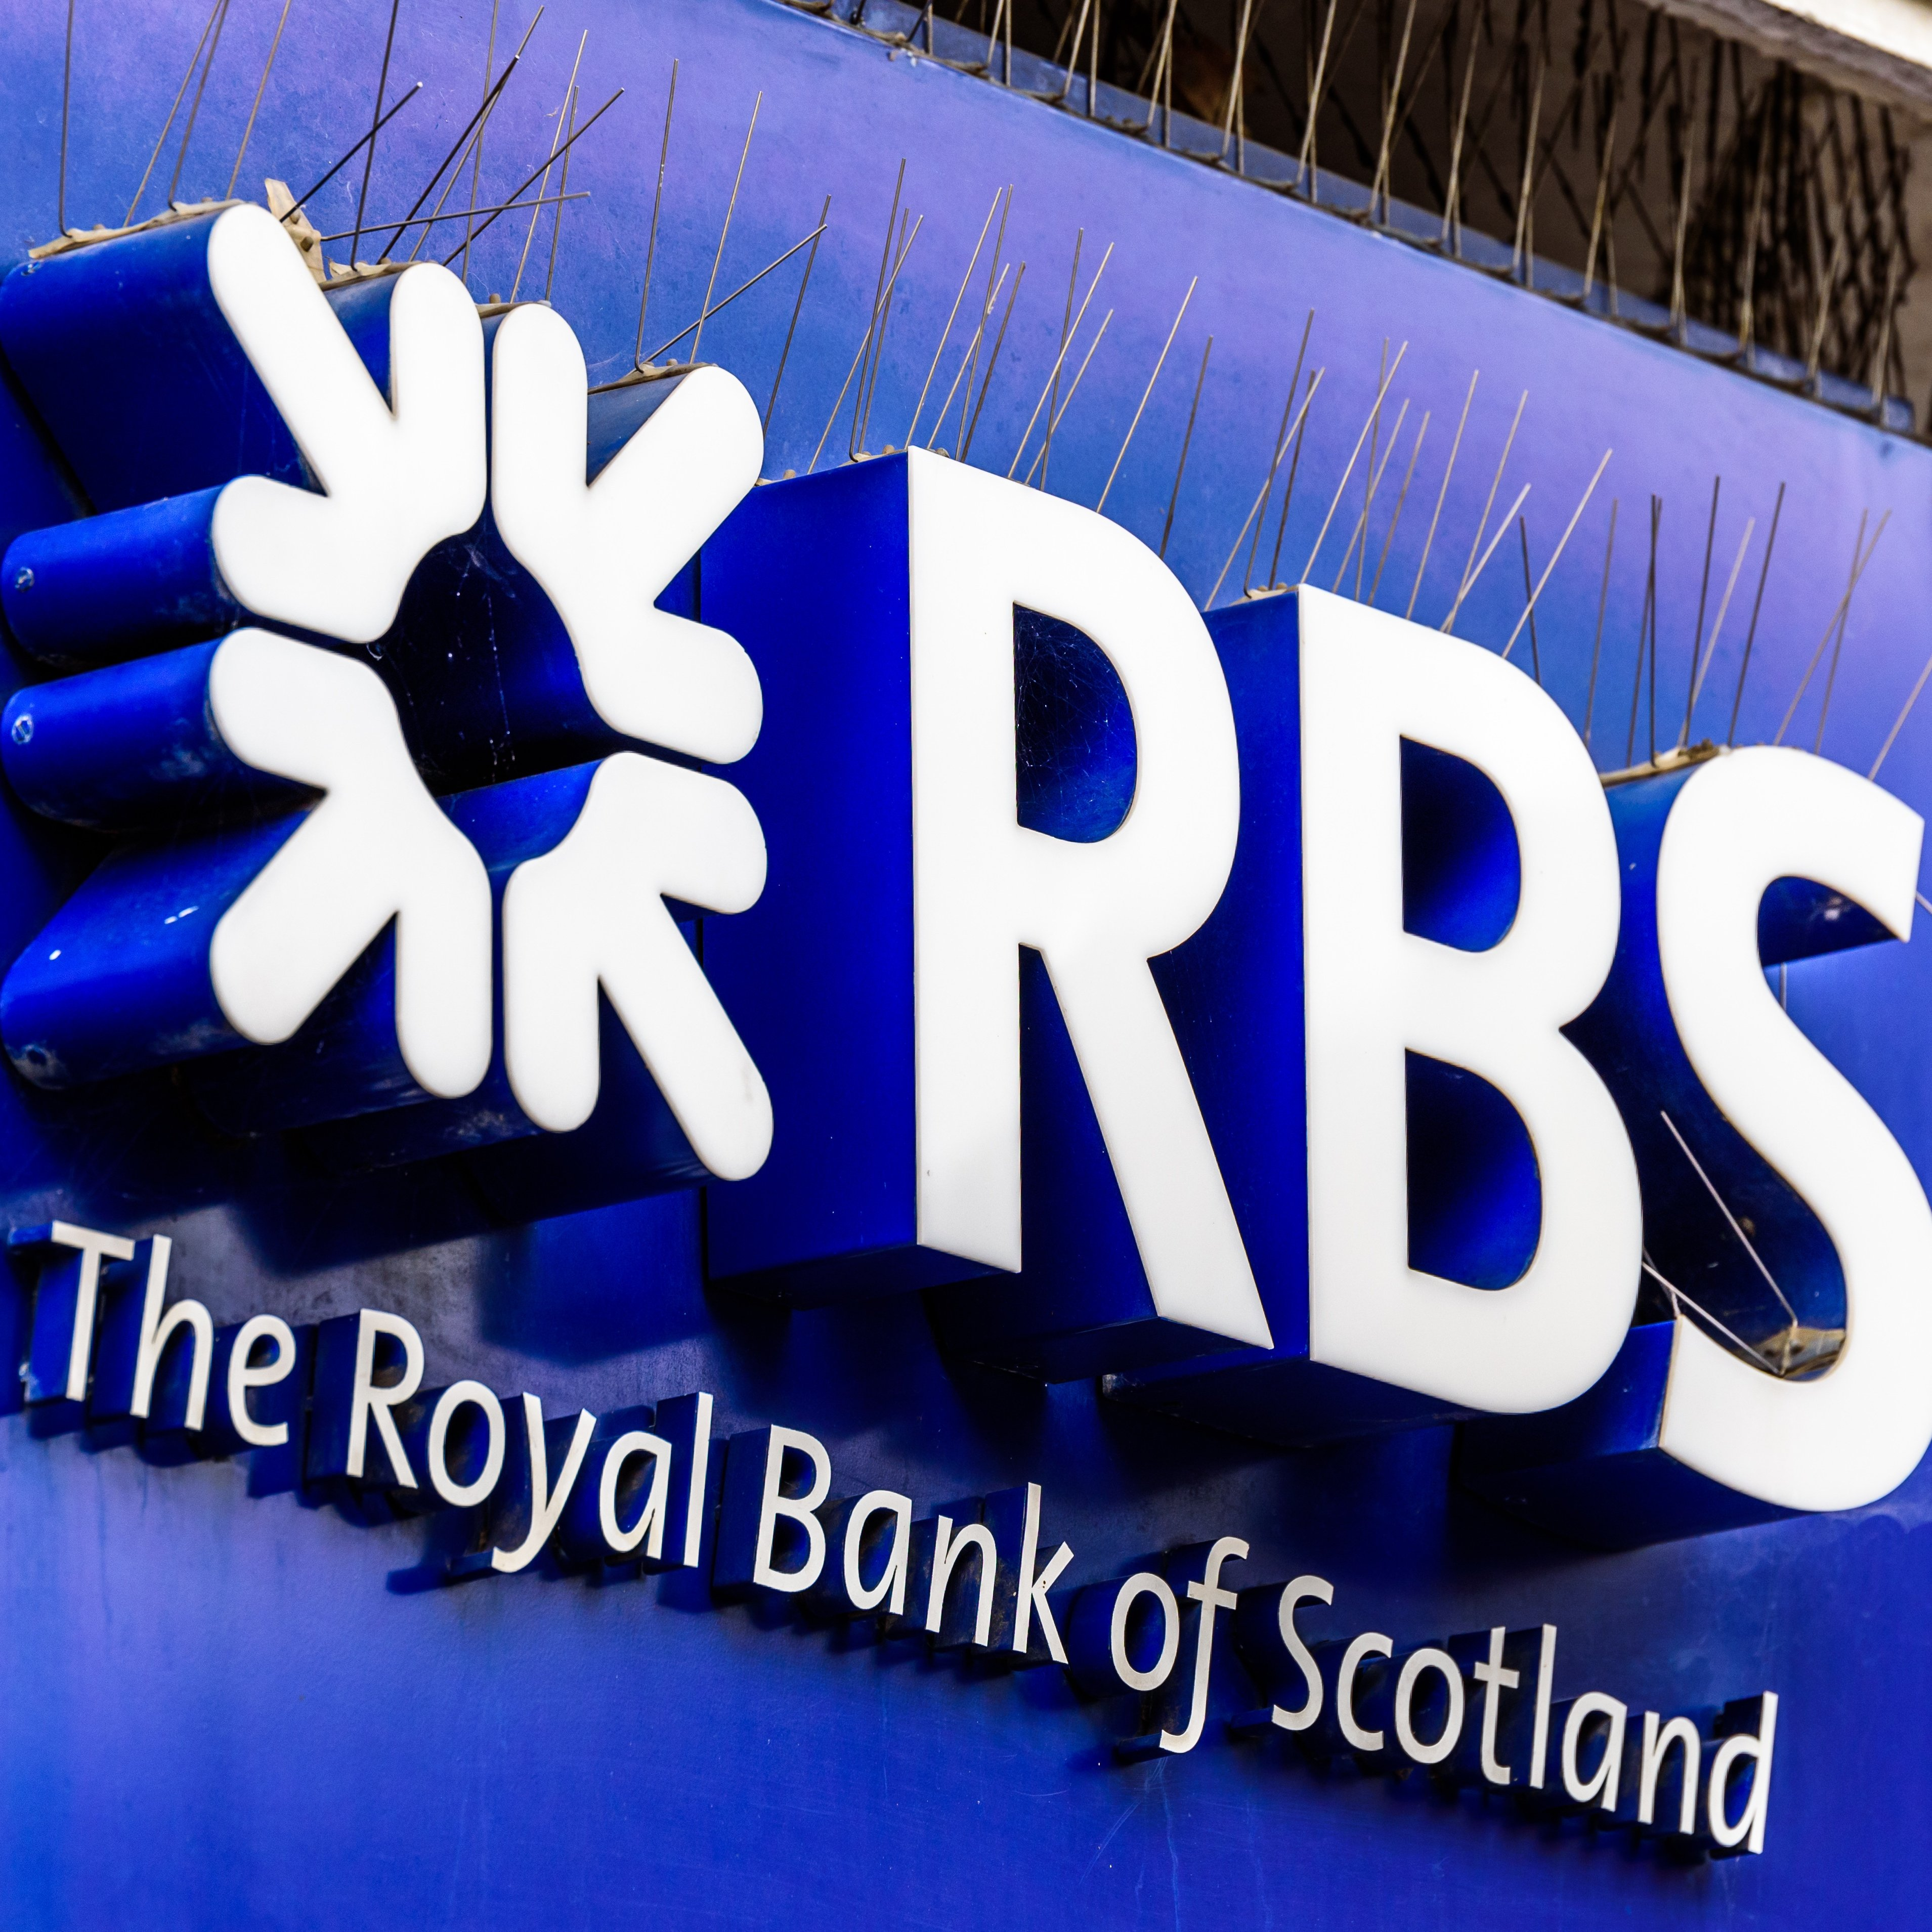 36,000 NatWest and RBS customers owed overdraft refunds